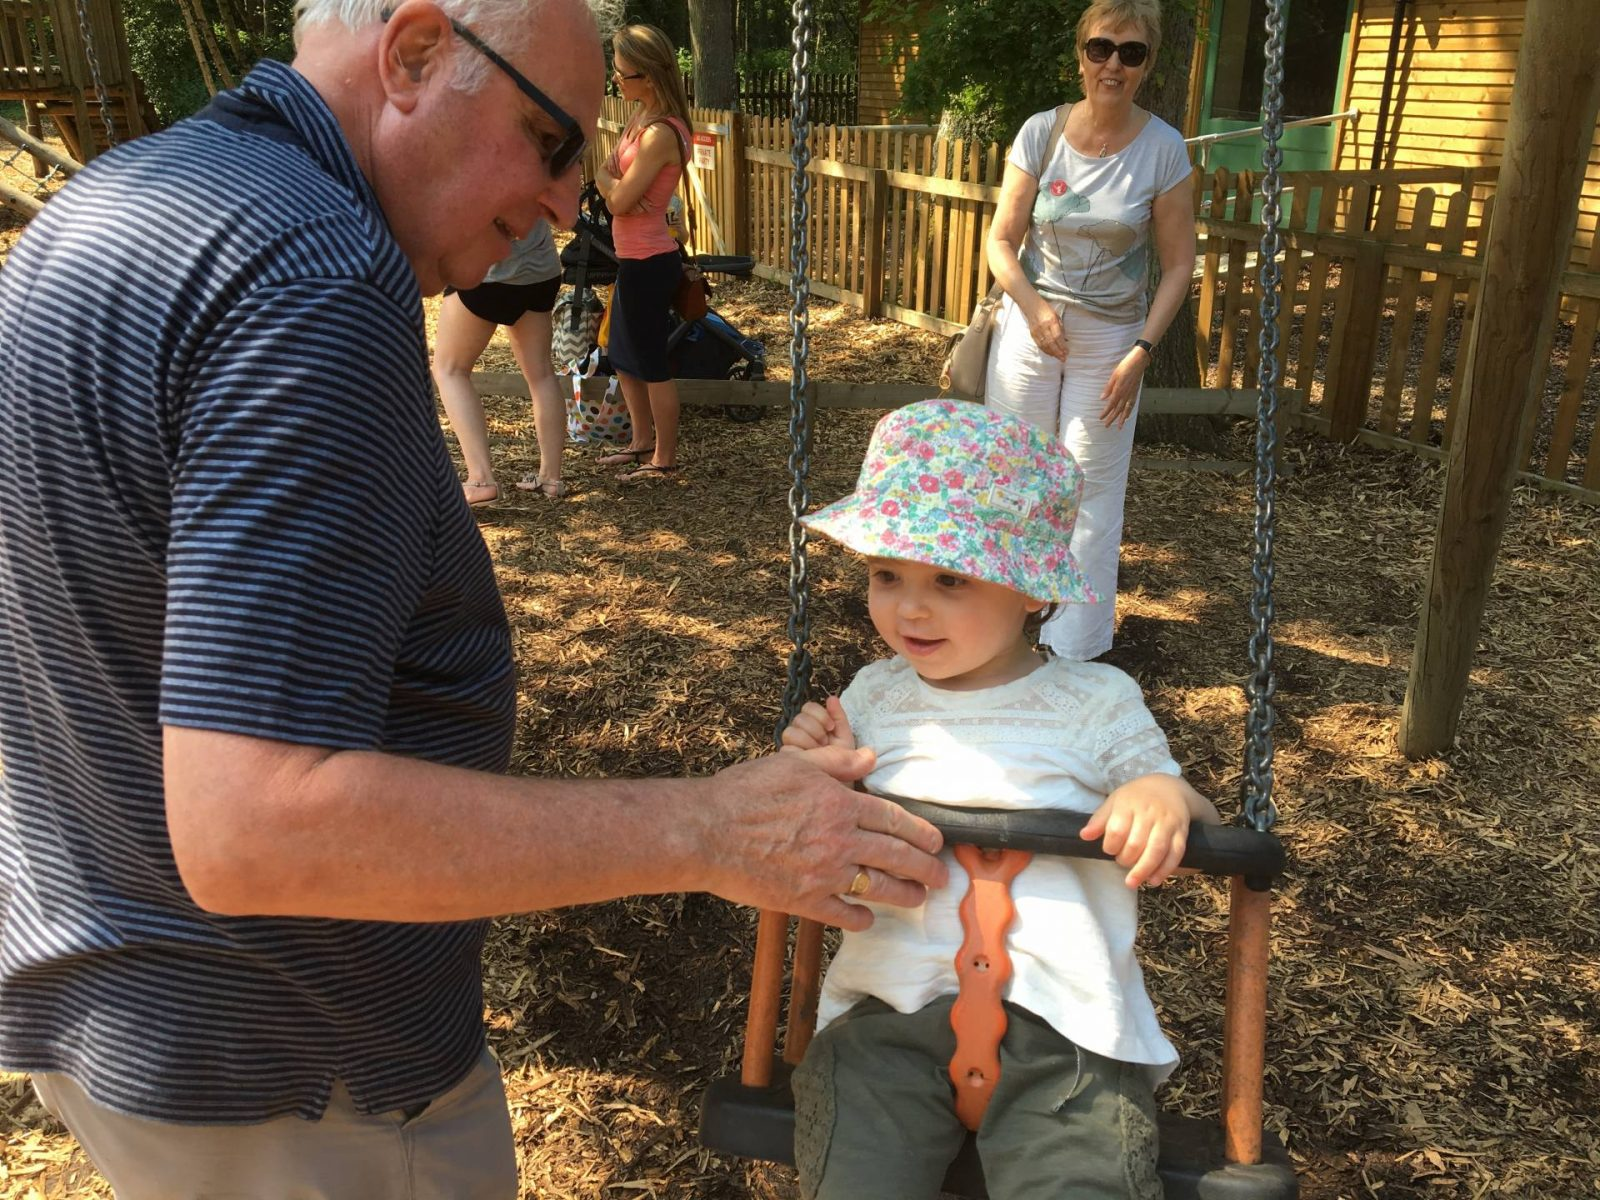 Time with Grandparents – The Ordinary Moments